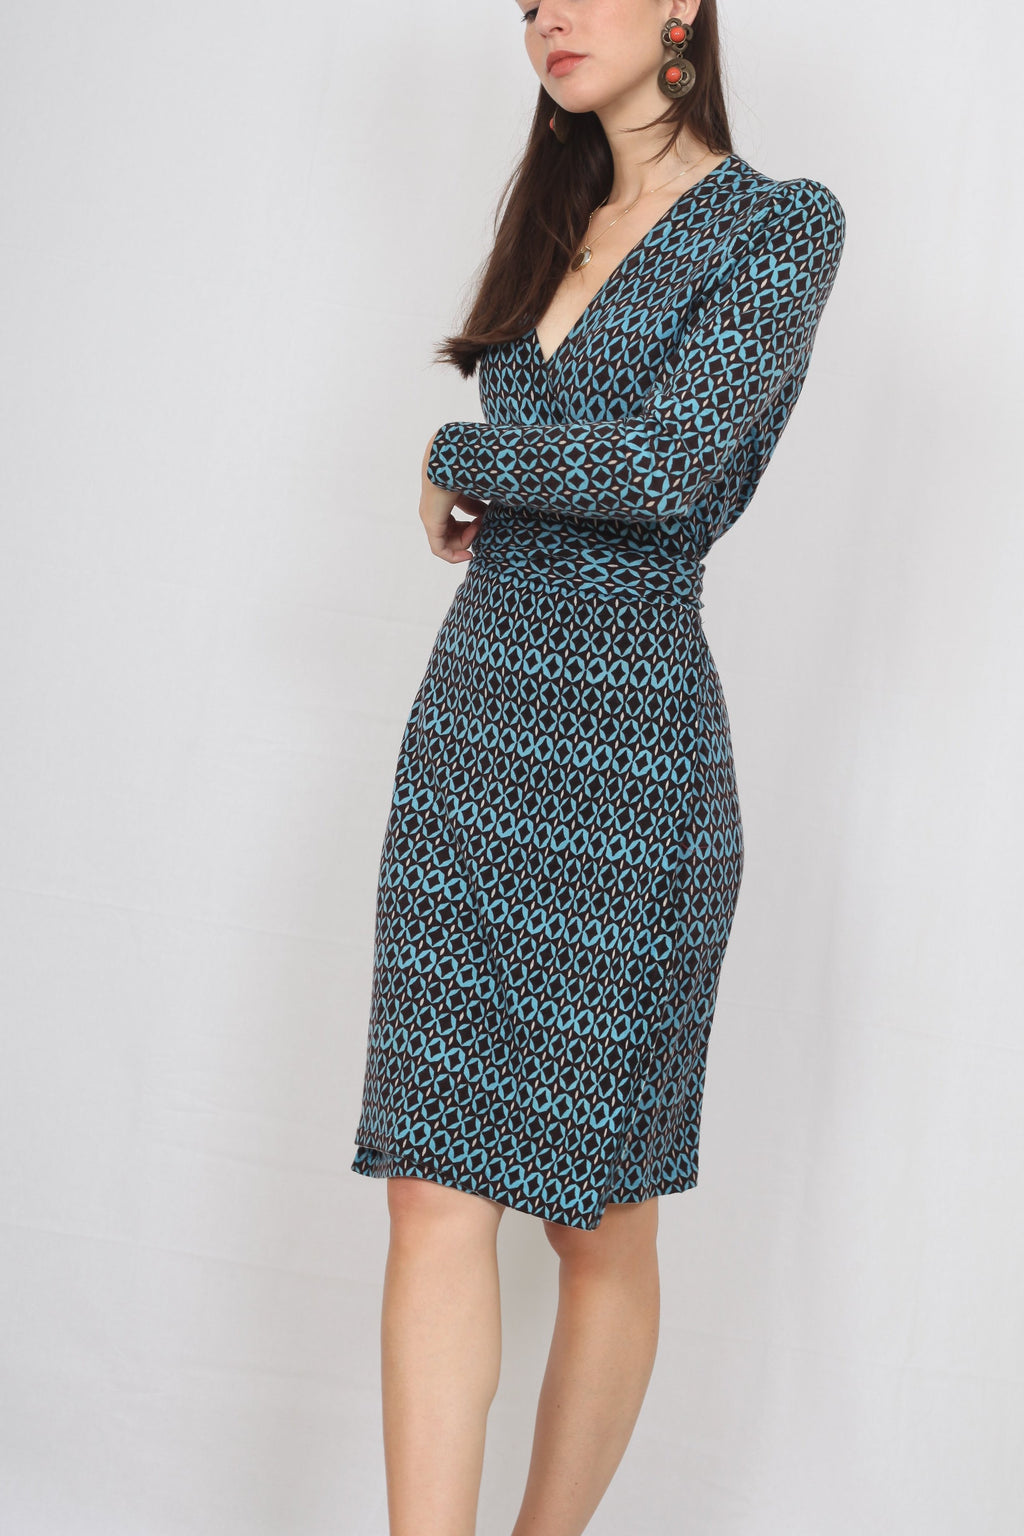 Diane von Furstenberg Wrap Dress - M